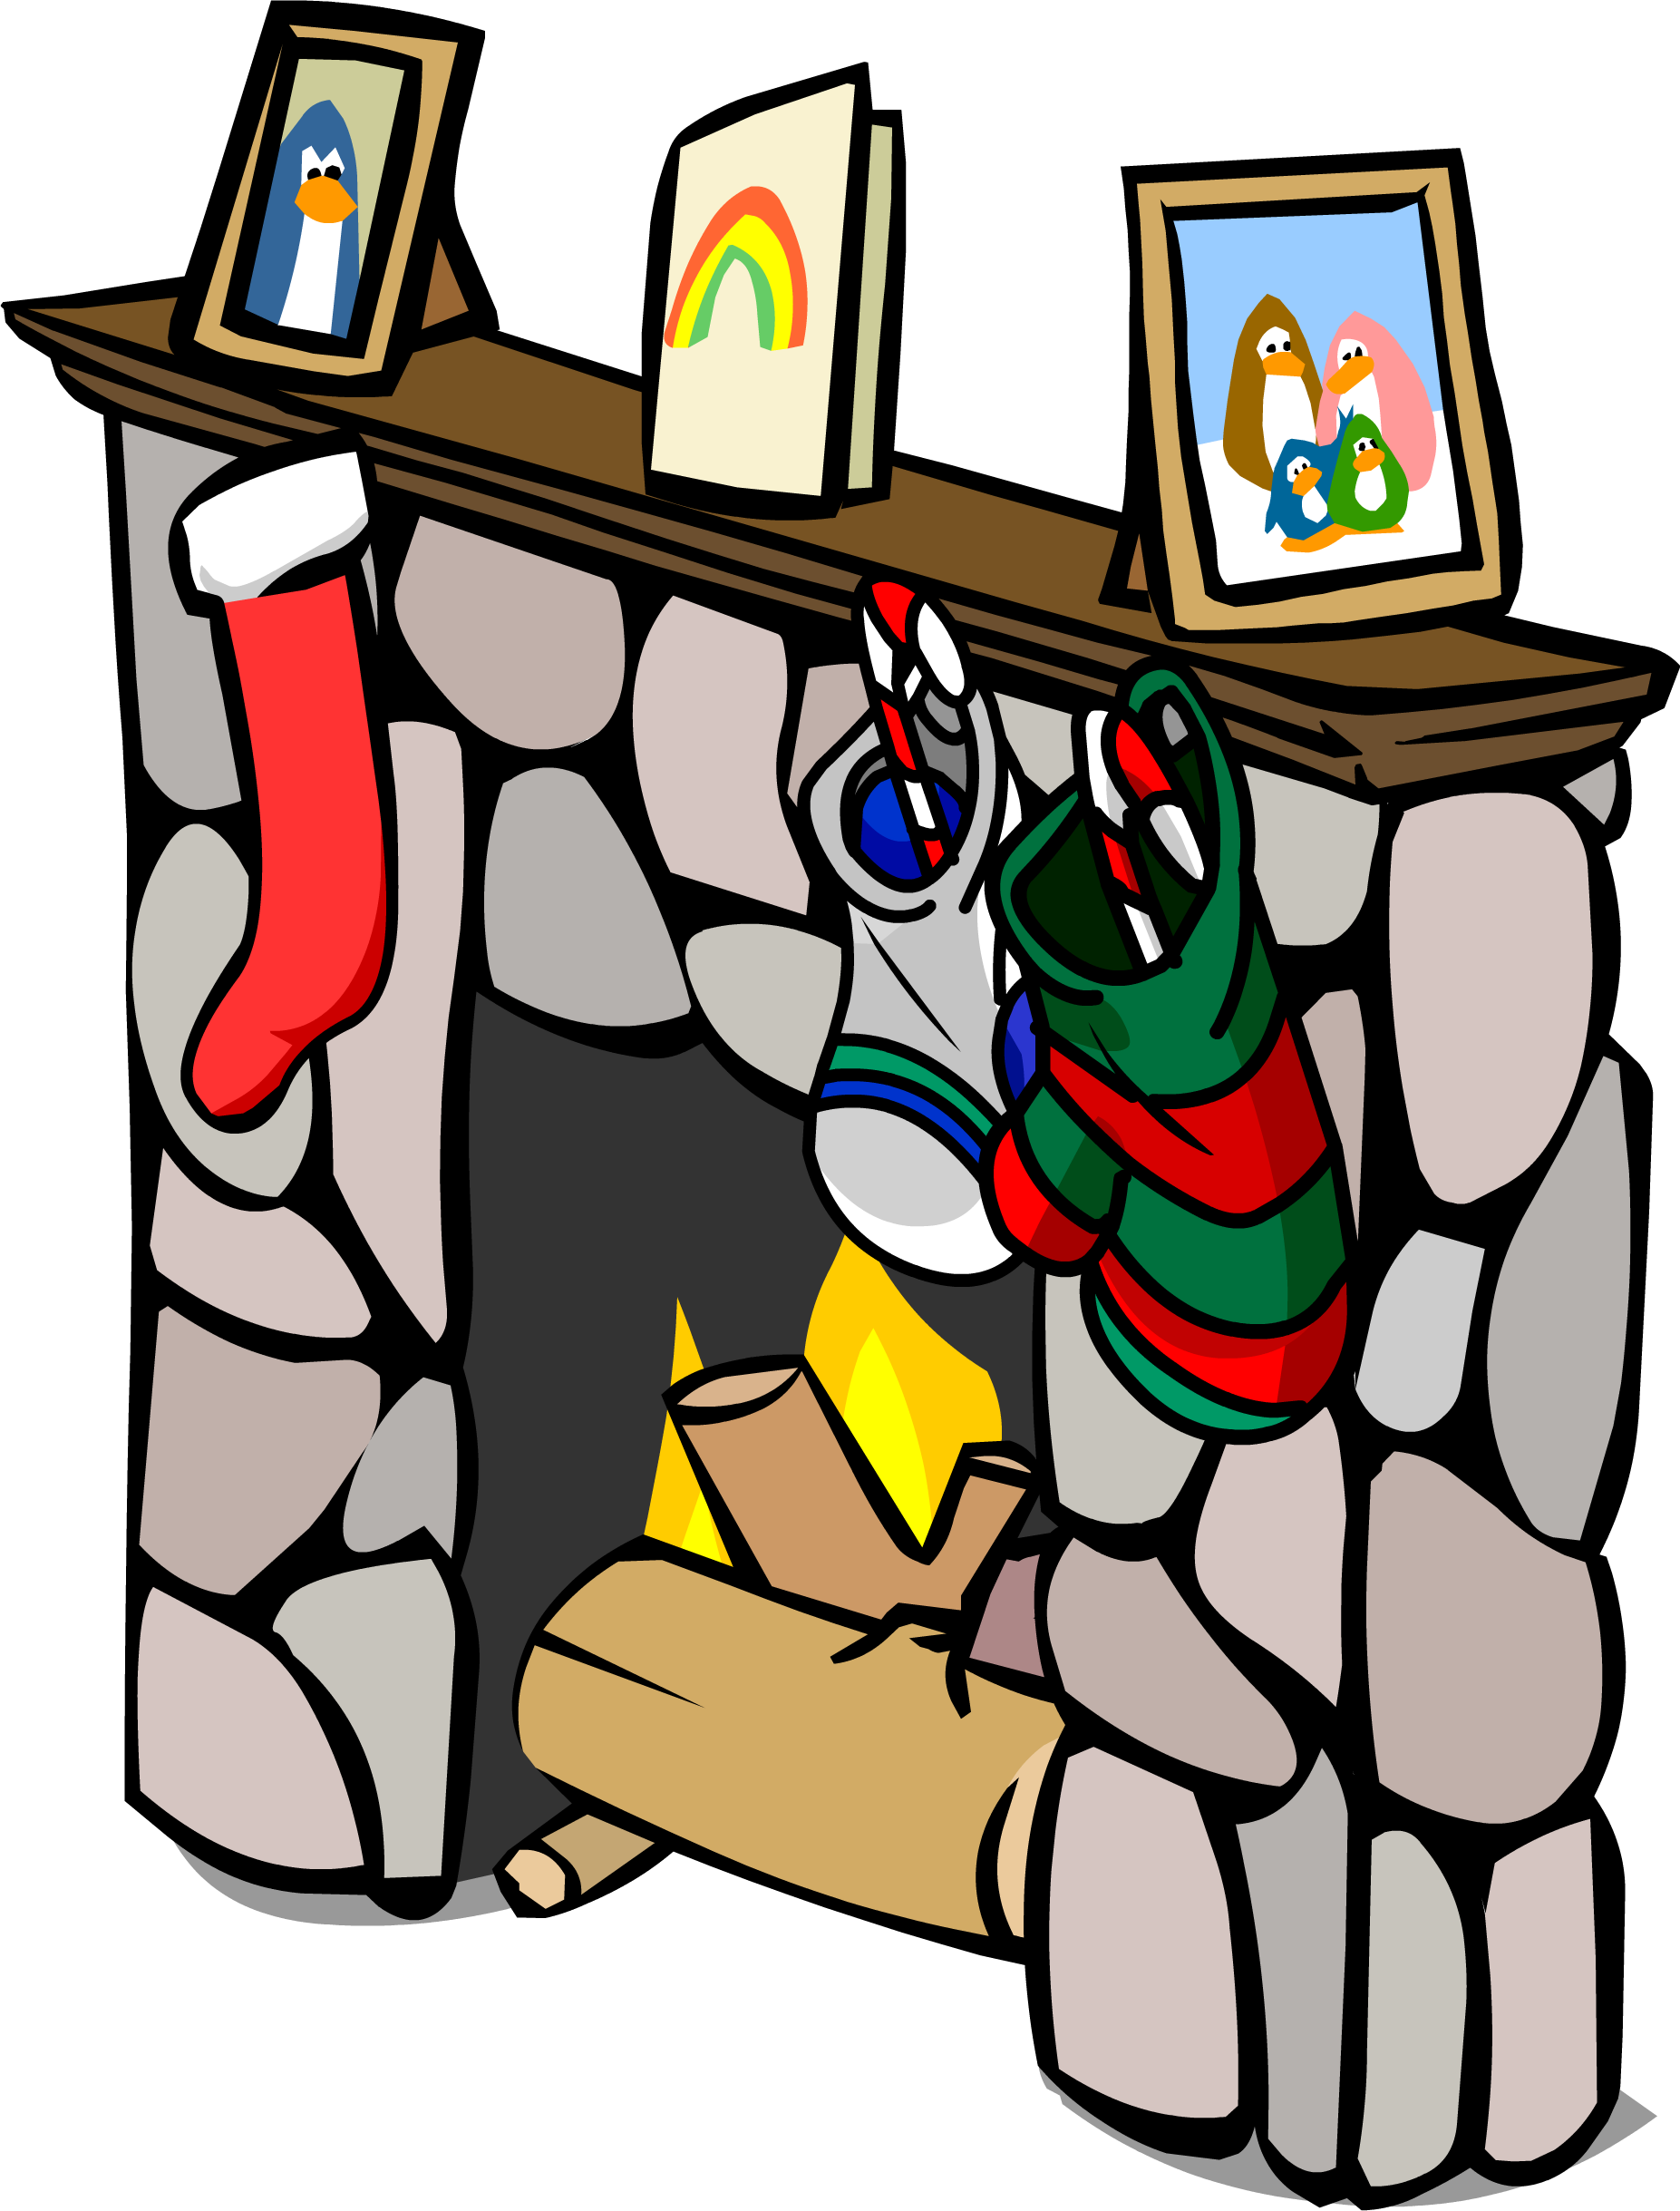 Fireplace clipart fireplace scene. Image sprite png club